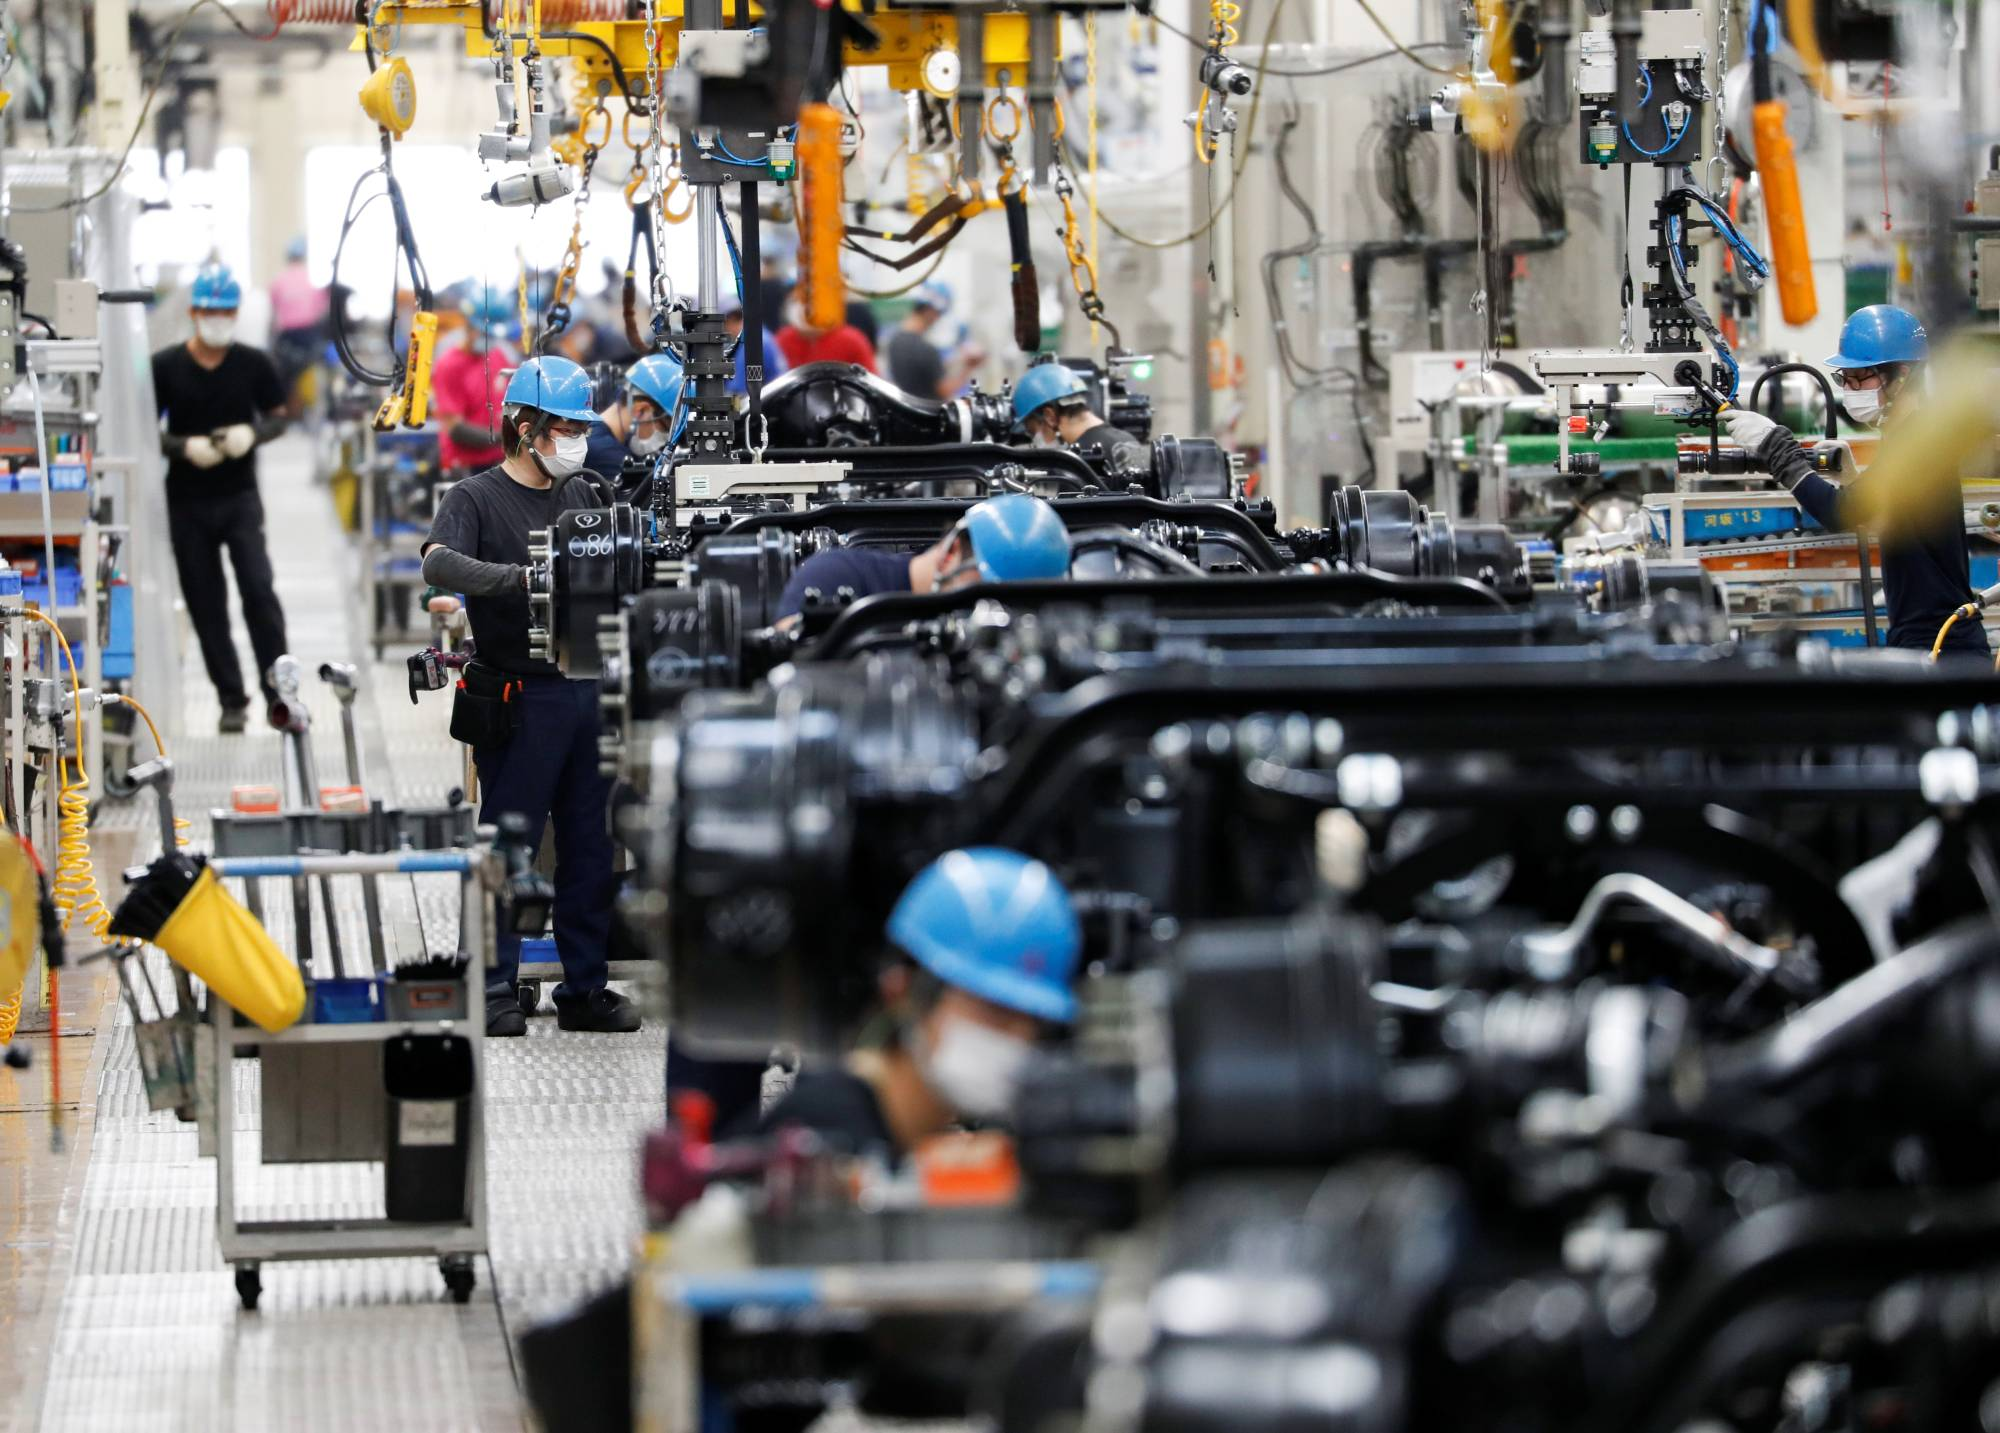 The spread of the novel coronavirus has affected Japan's auto production industry, dependent on parts imported from China, illustrating the vulnerability of supply chains. | REUTERS